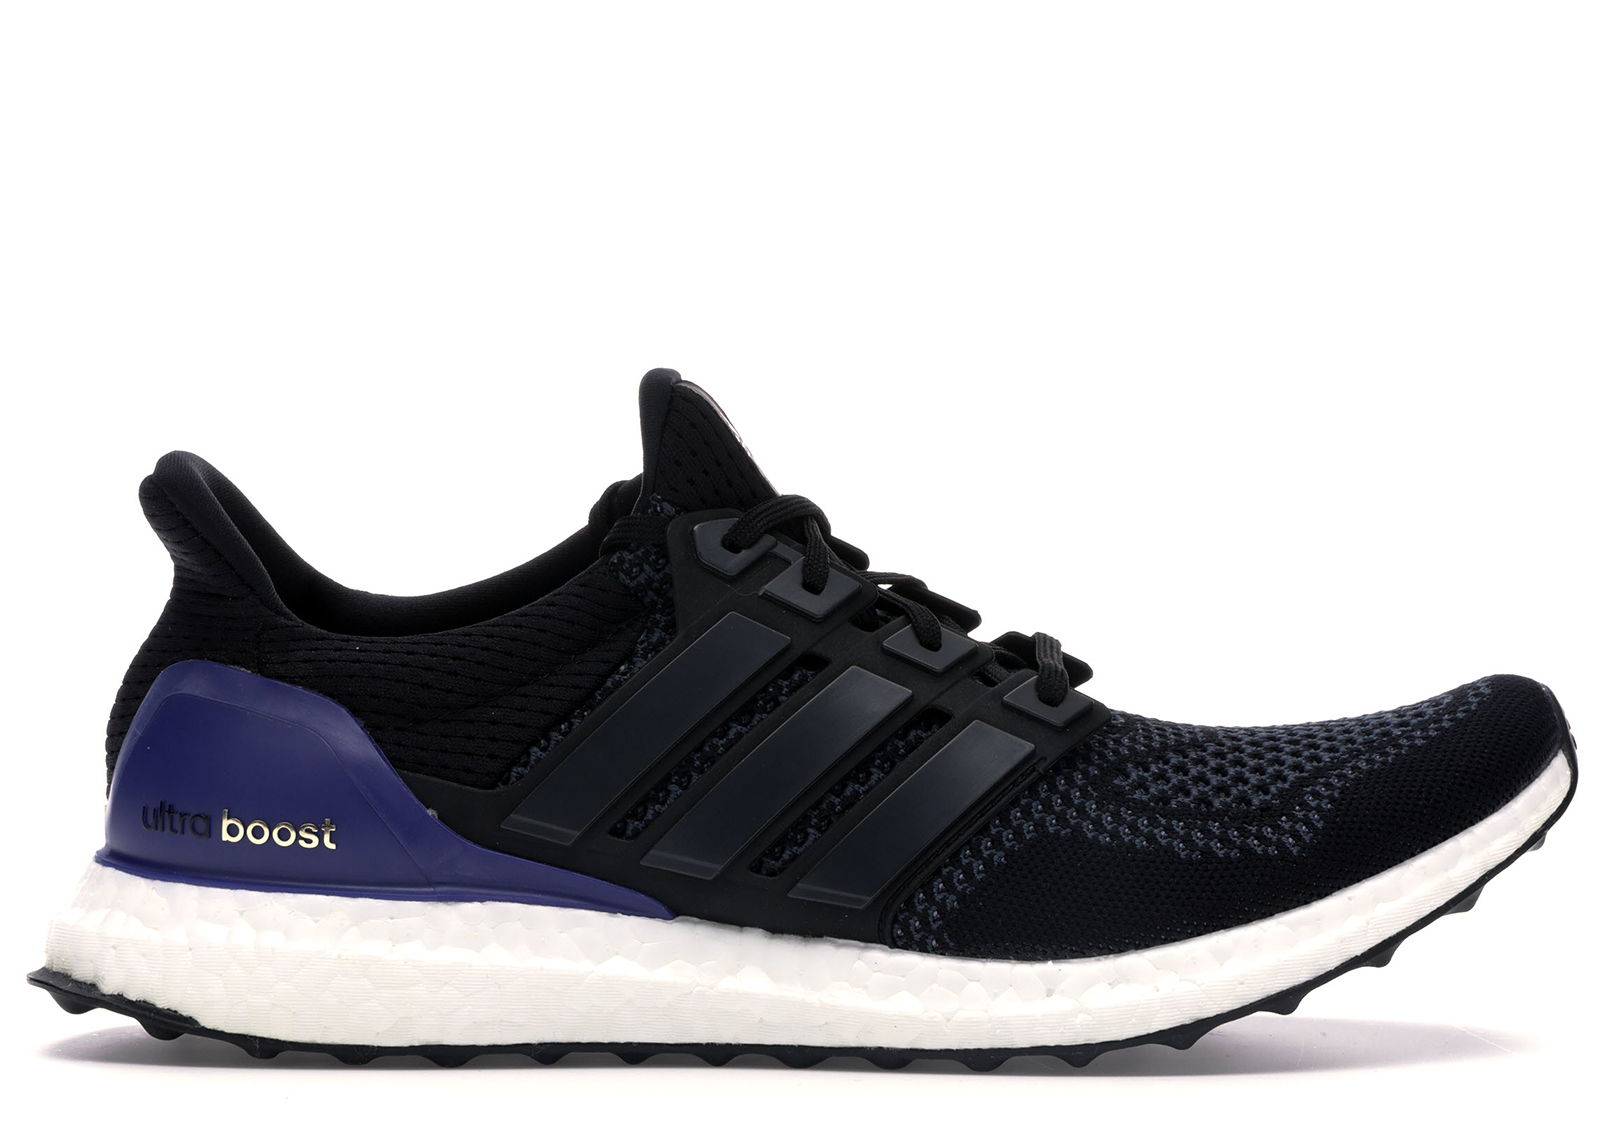 ultra boost black gold purple